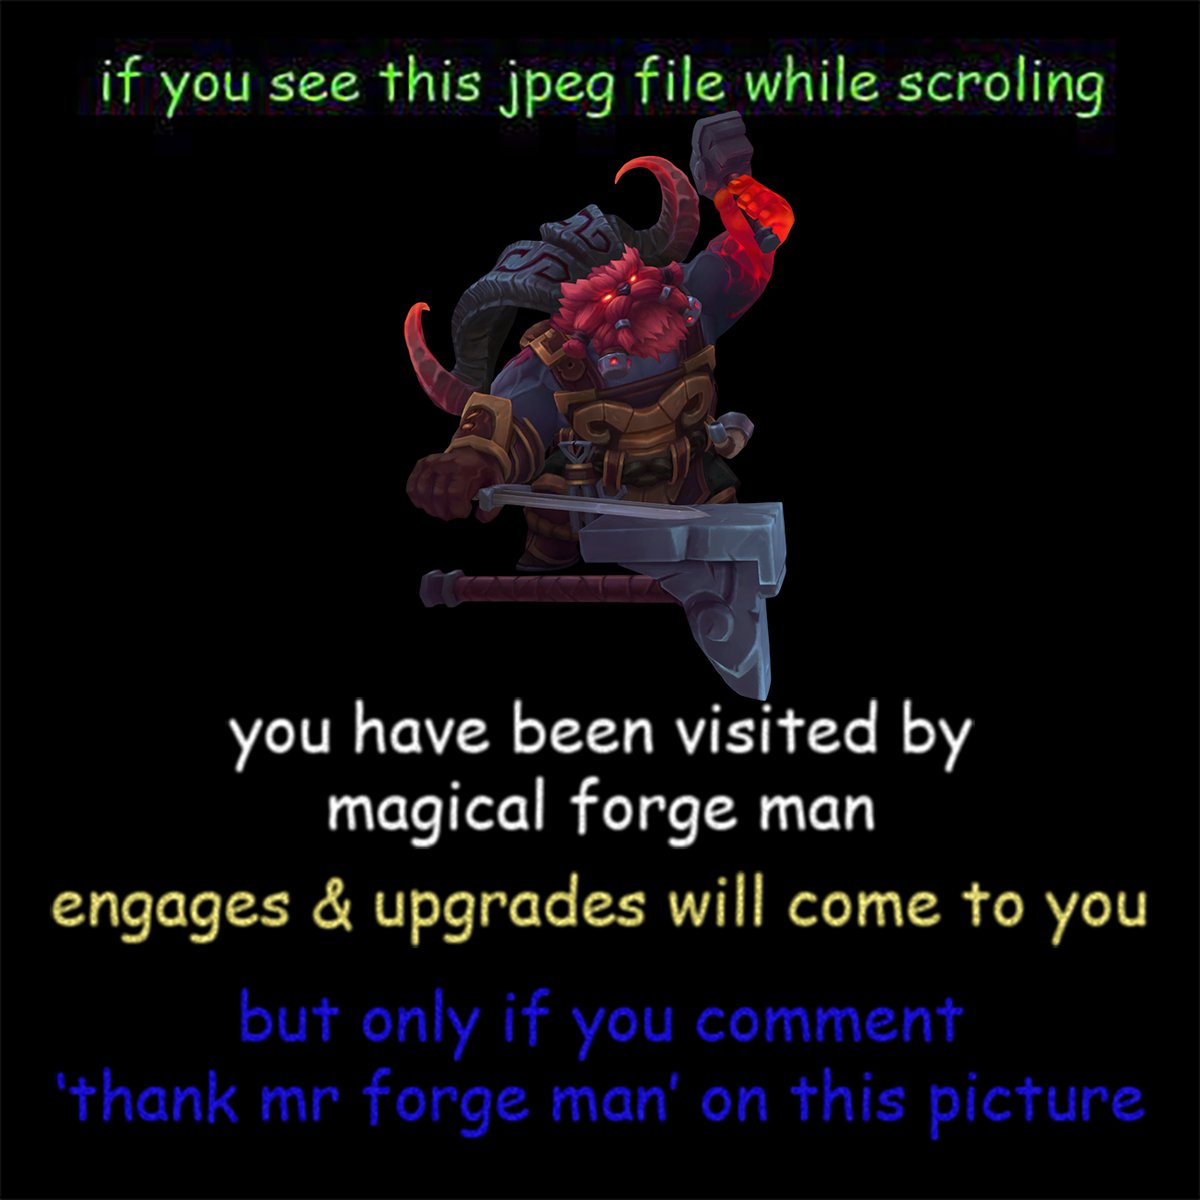 thank mr forge man https://t.co/4ogNwYCqfX